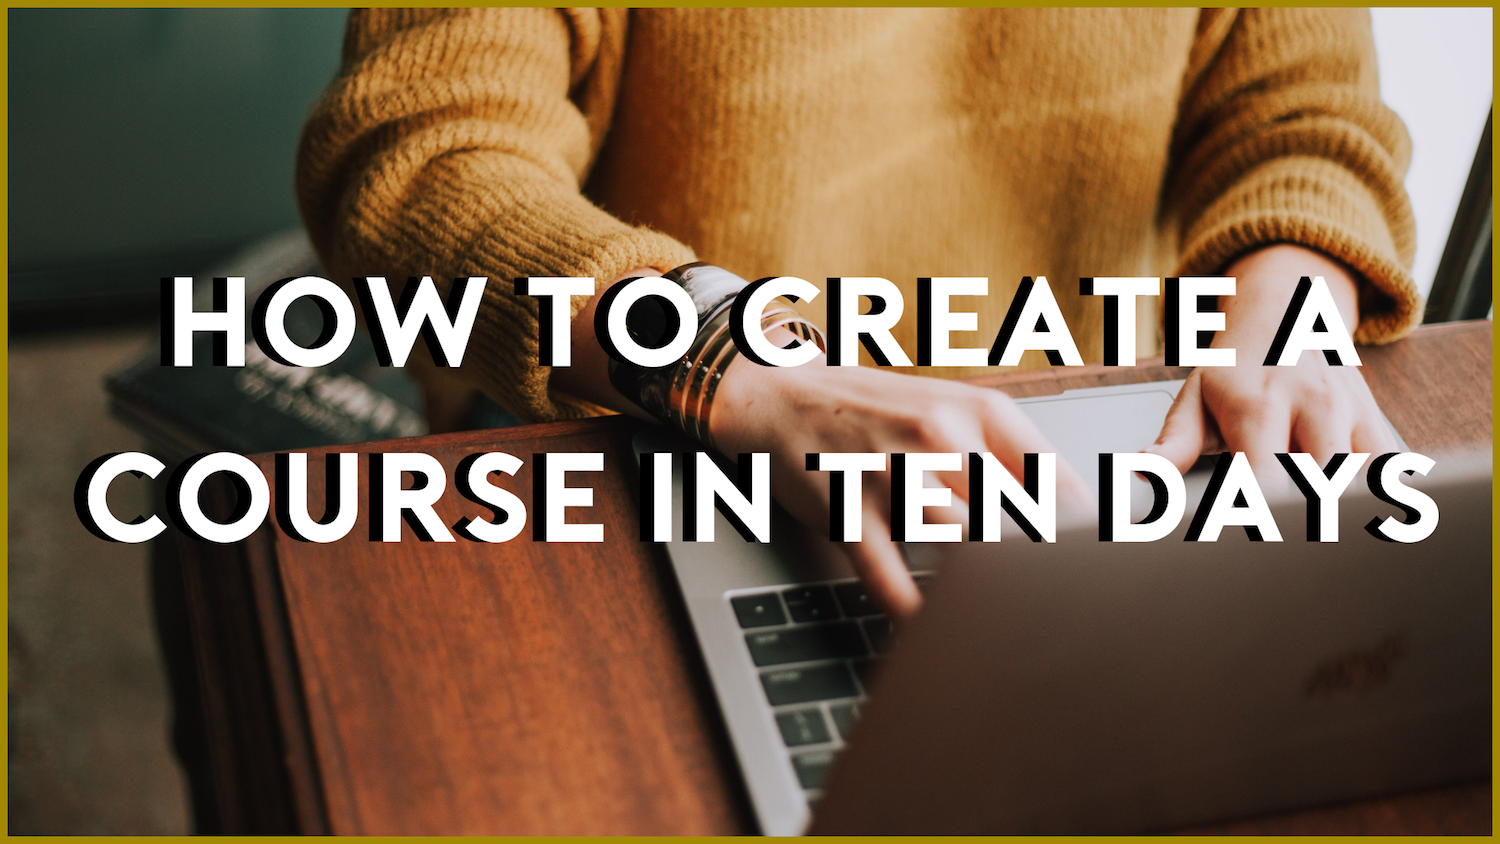 HOW TO CREATE A COURSE IN TEN DAYS.png